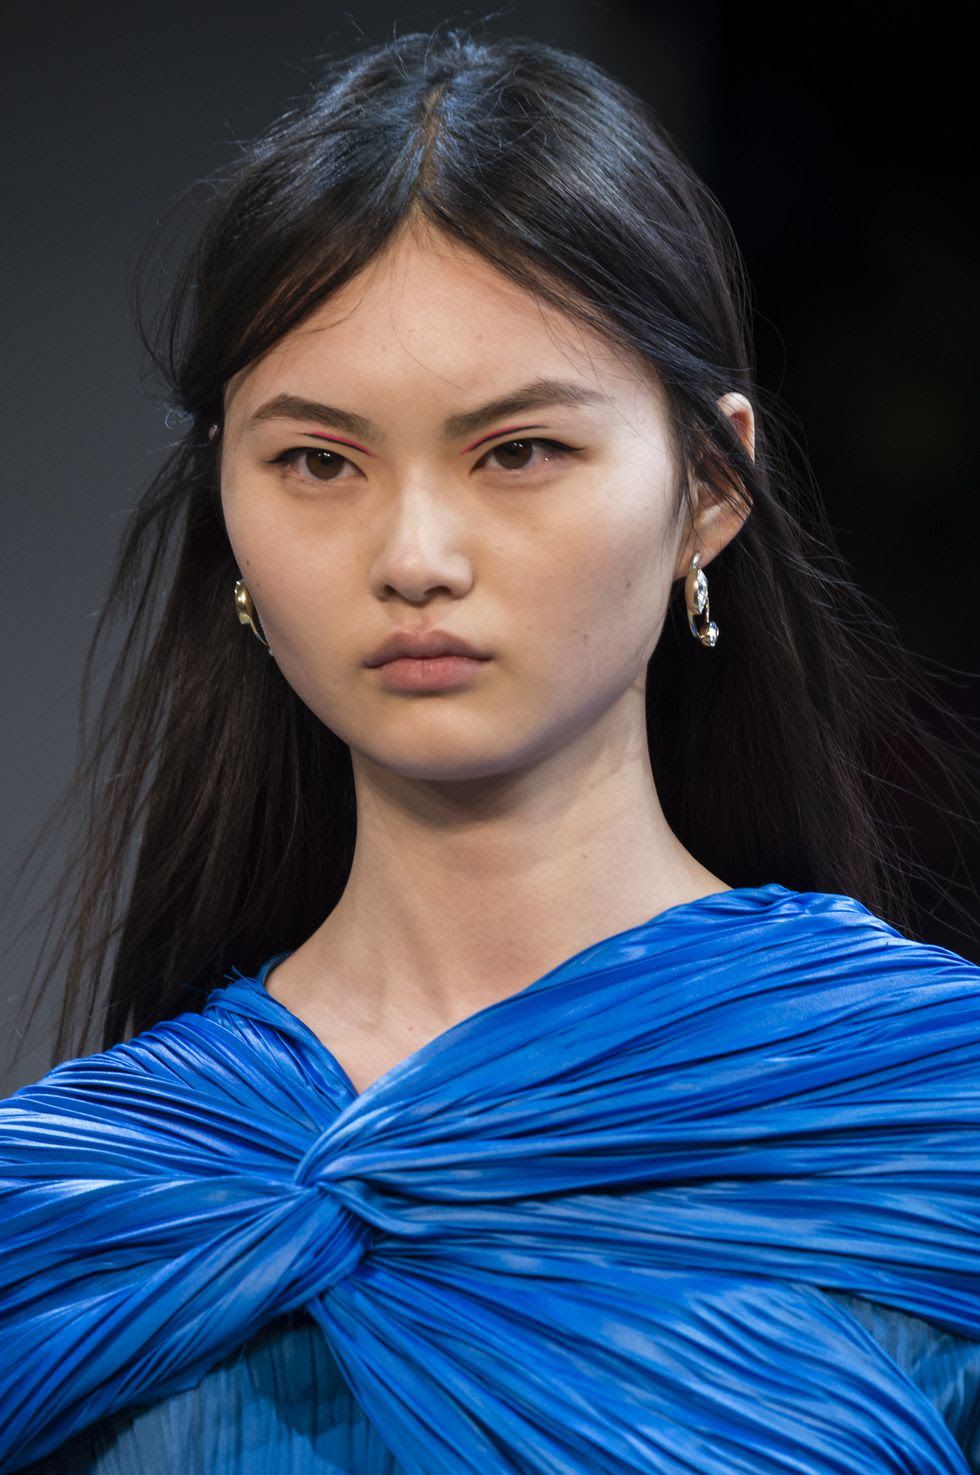 NYC Fashion Week Fall/Winter '18 Brow Trends 10